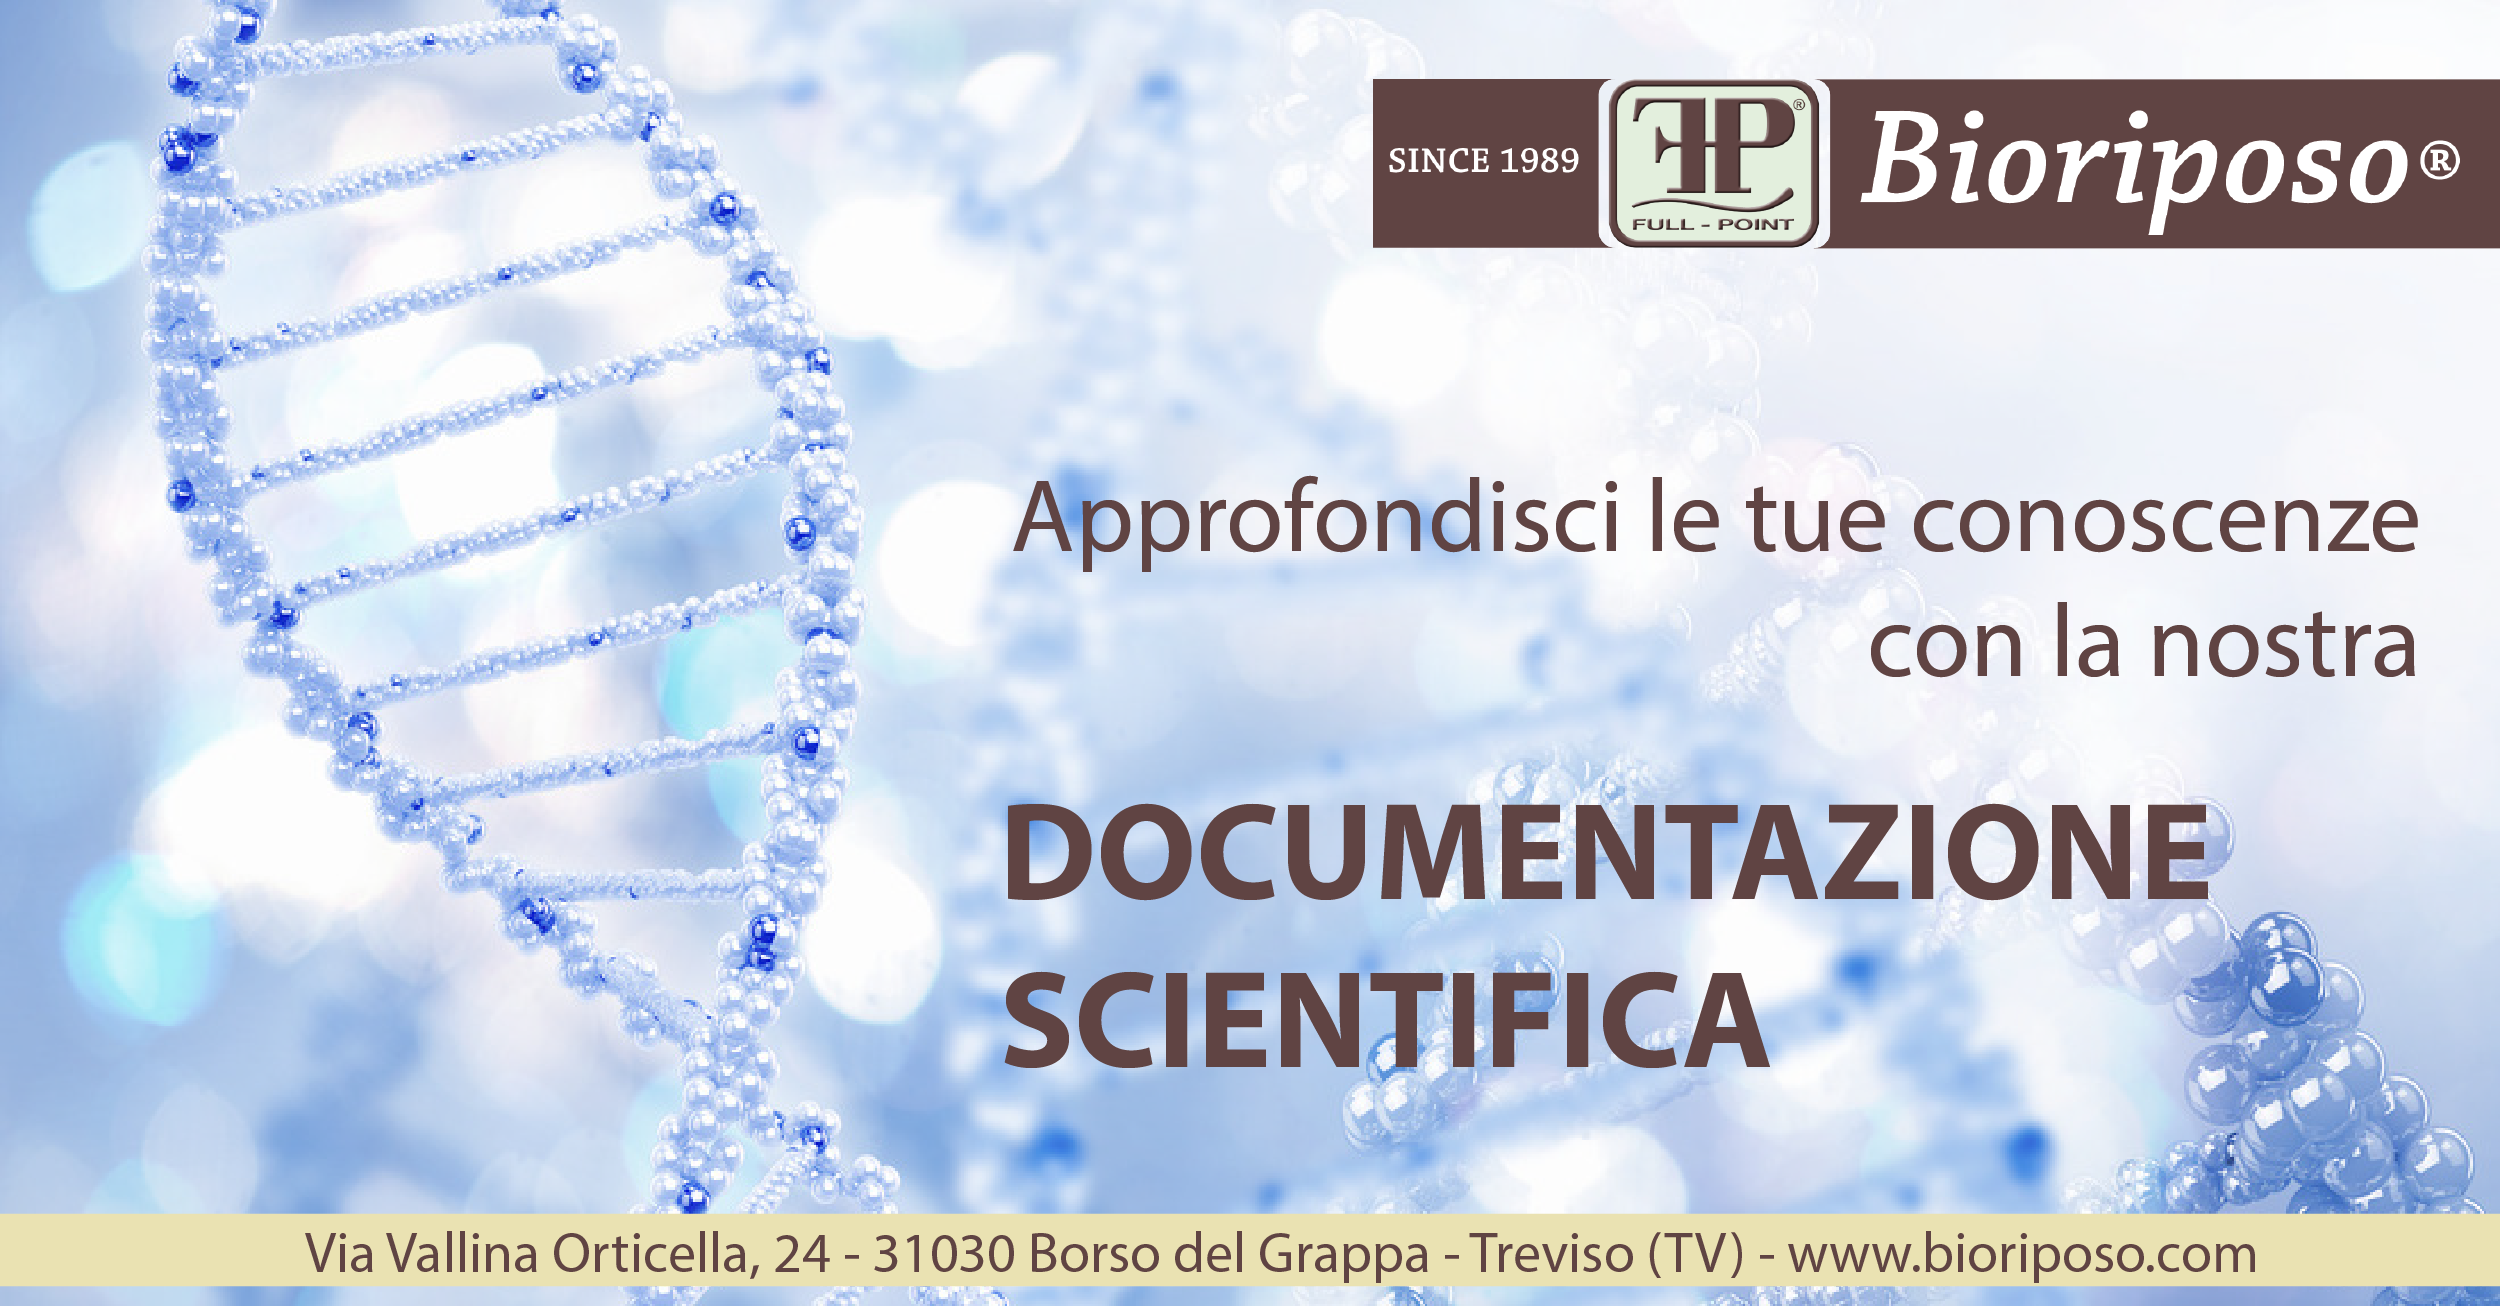 Documentazione scientifica e approfondimenti